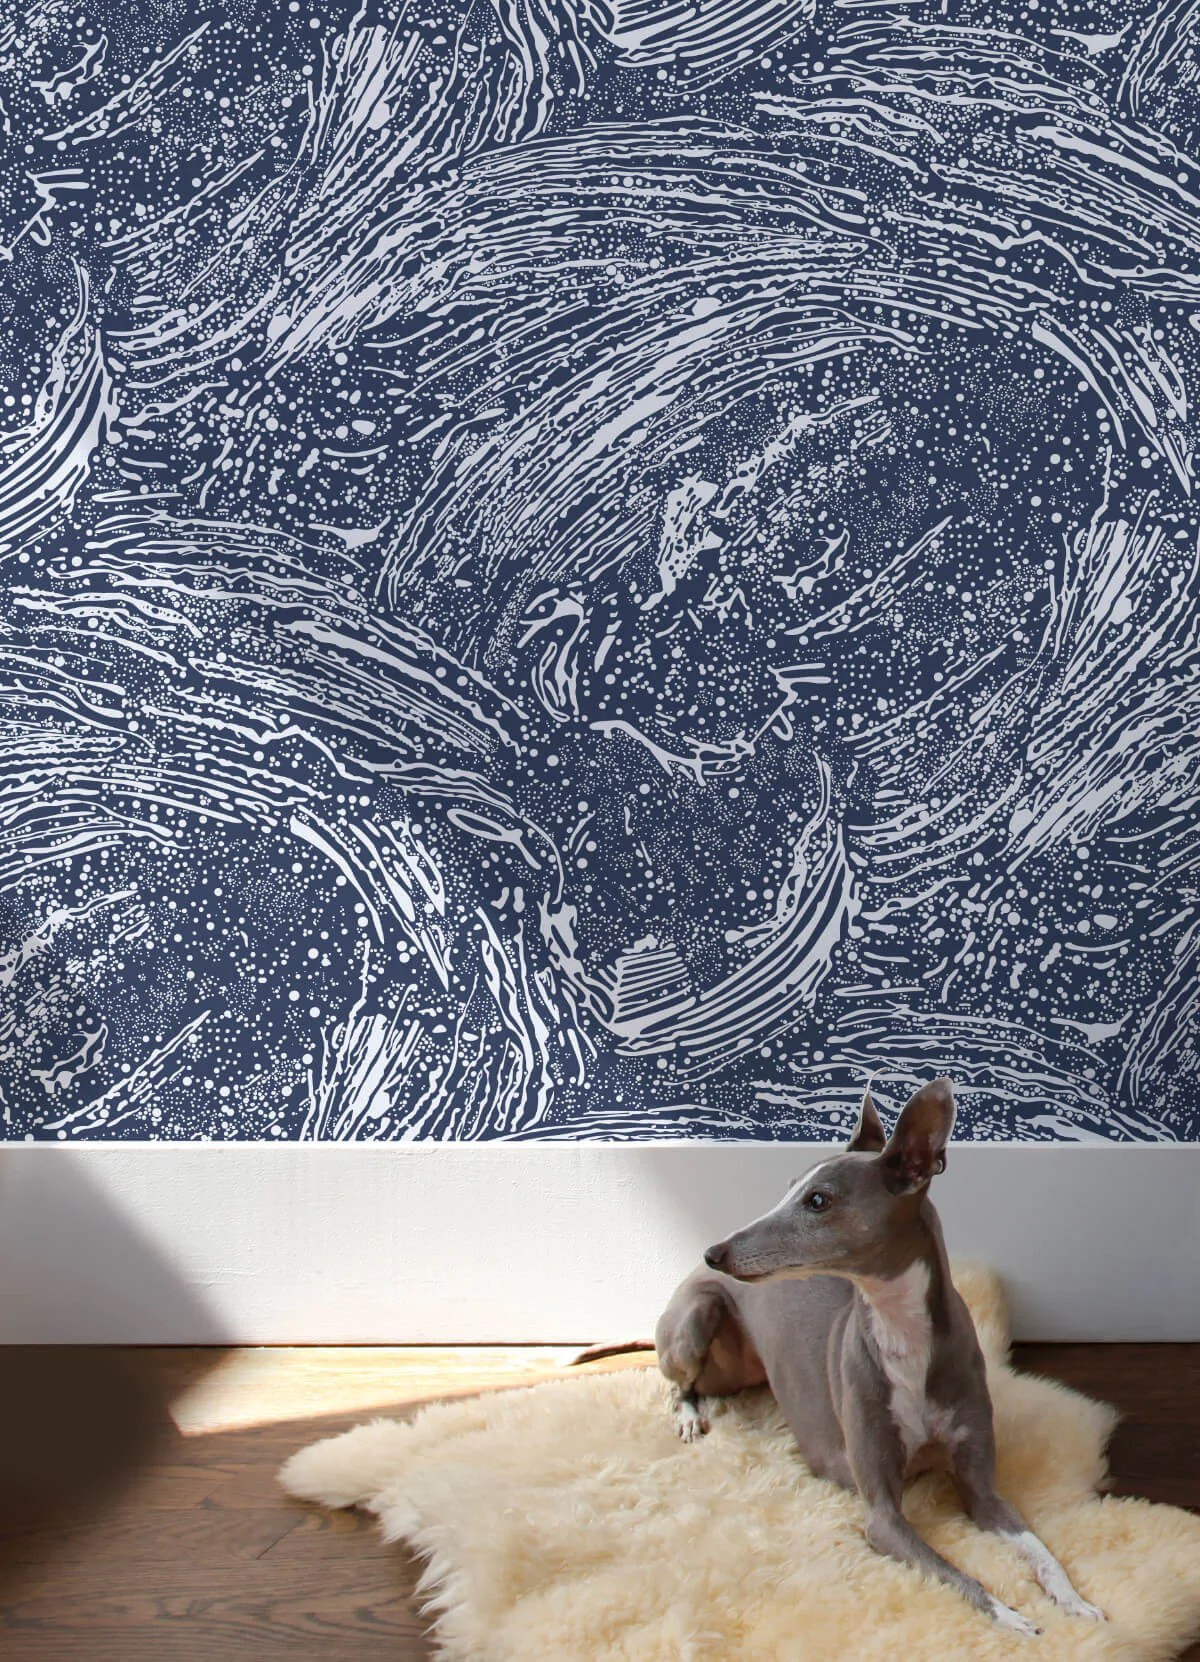 Cosmic Splash Wallpaper in Lazurite design by Aimee Wilder